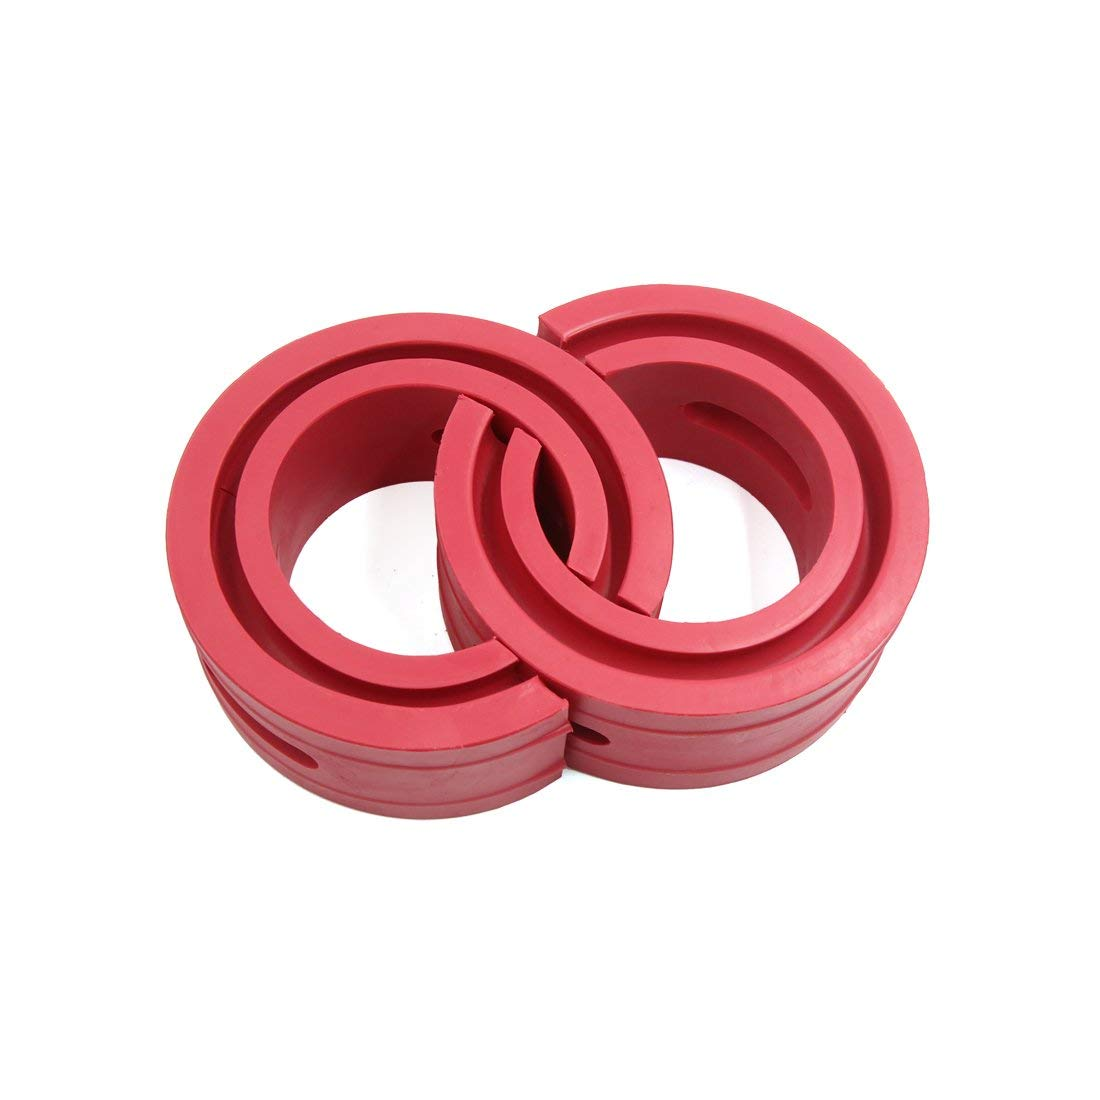 uxcell Type C Red Car Rubber Shock Absorber Spring Bumper Buffer Power Cushion 2pcs